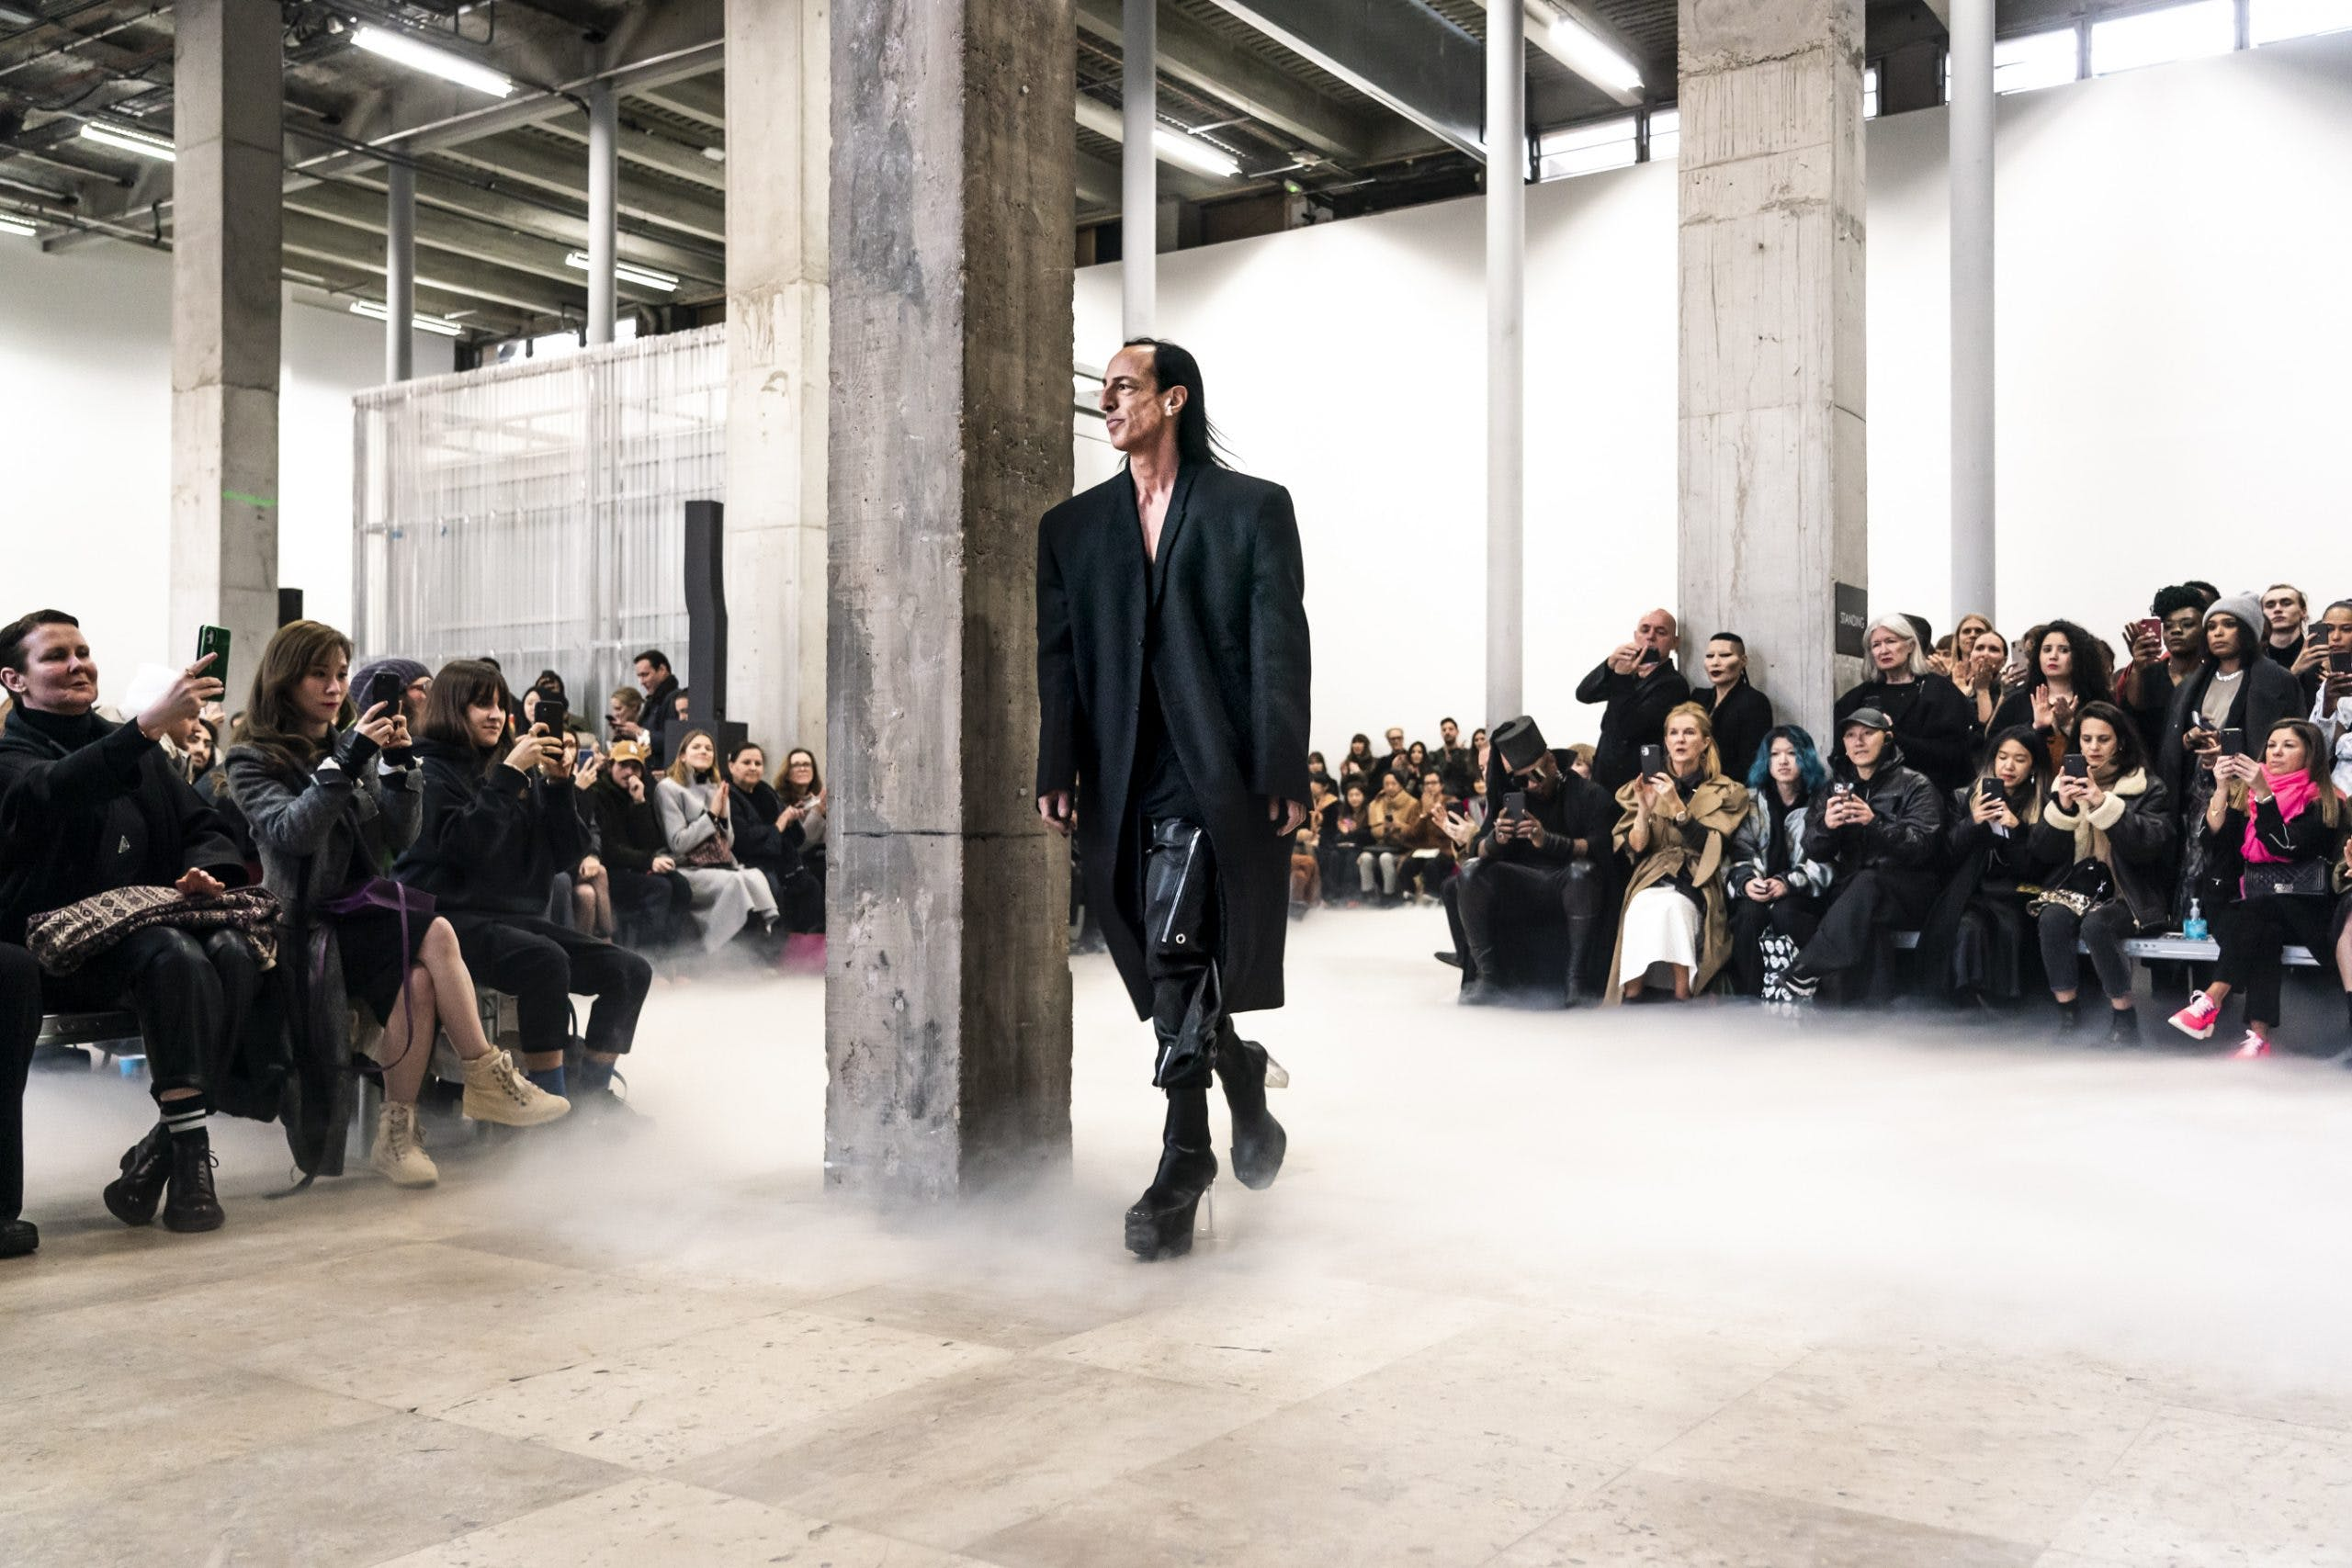 Rick Owens Runway Rick Owens Walk Through in Black Oversized Blazer Bauhaus Cargo Leather Pants Kiss Krill Boots in Black Leather With Transparent Heel  Womens FW20 Performa